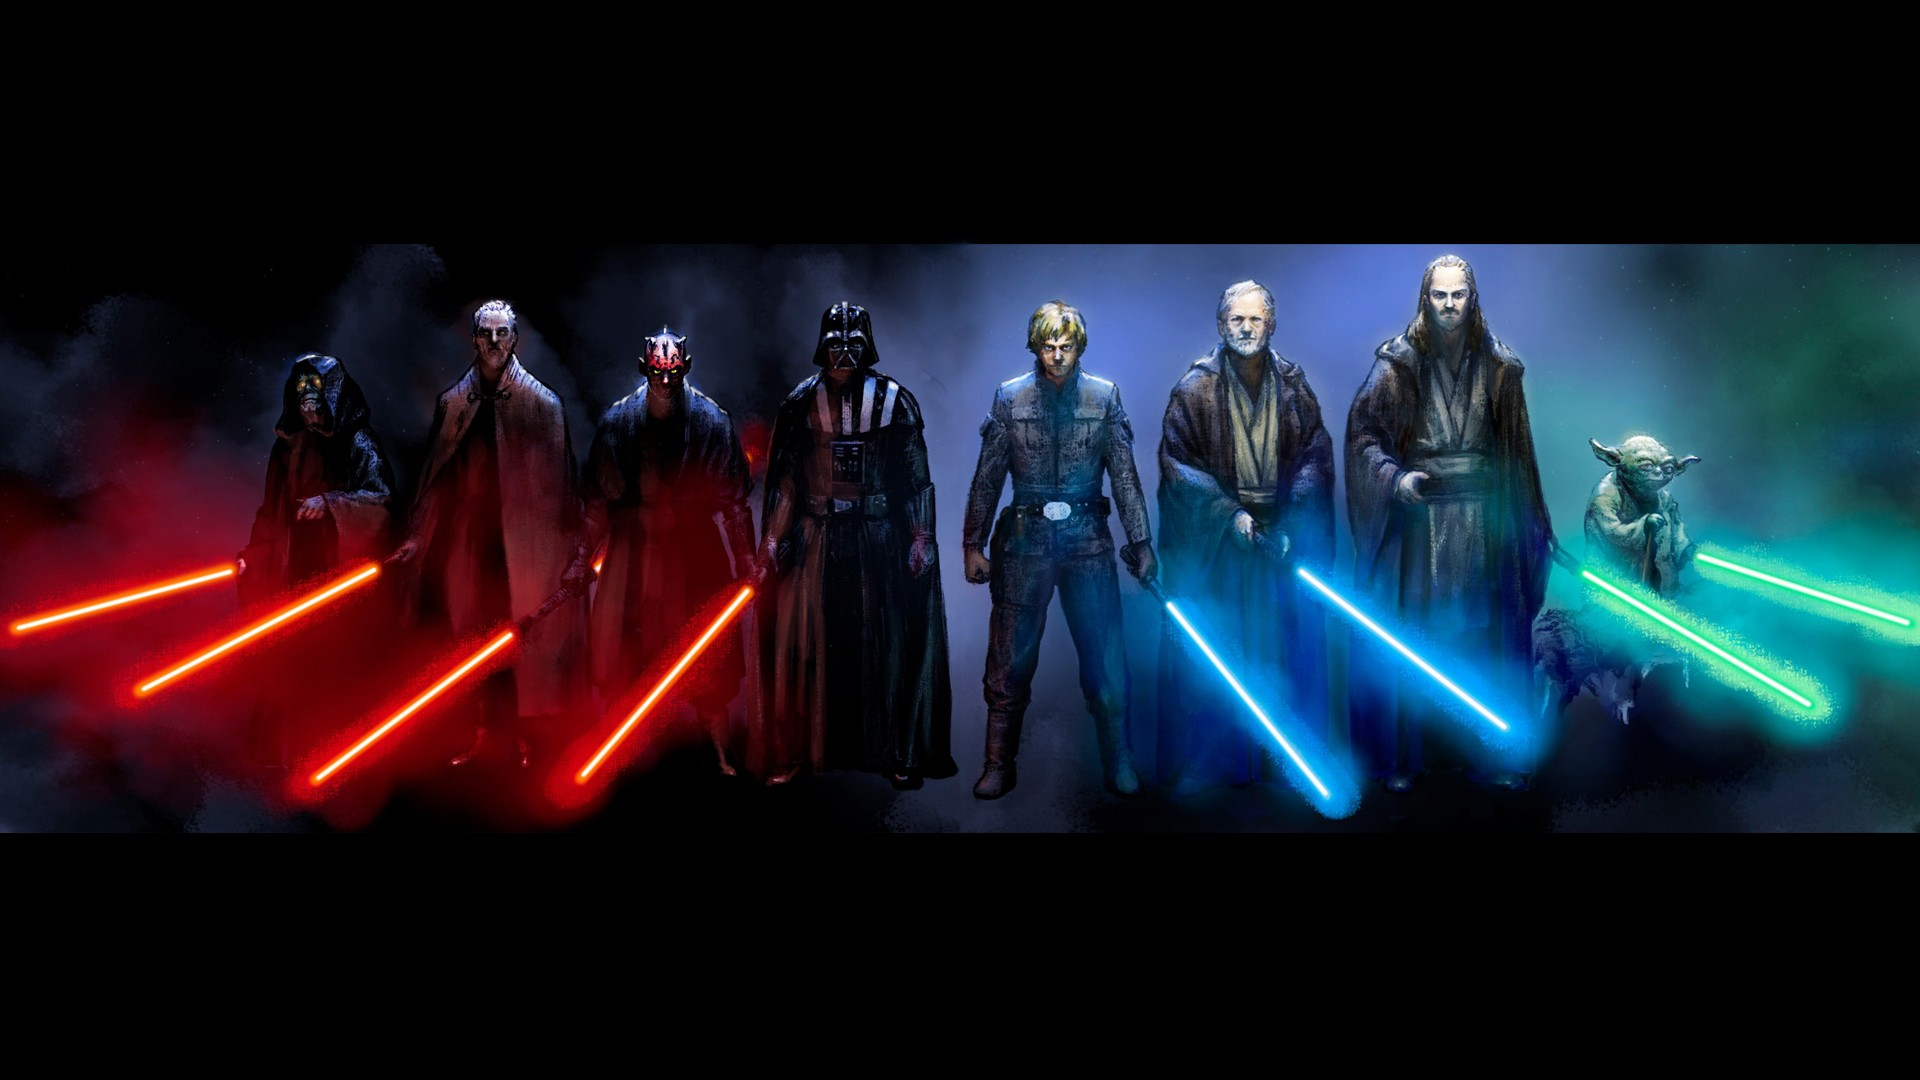 movies star wars chahracters wallpapers download lovely hd 1920x1080